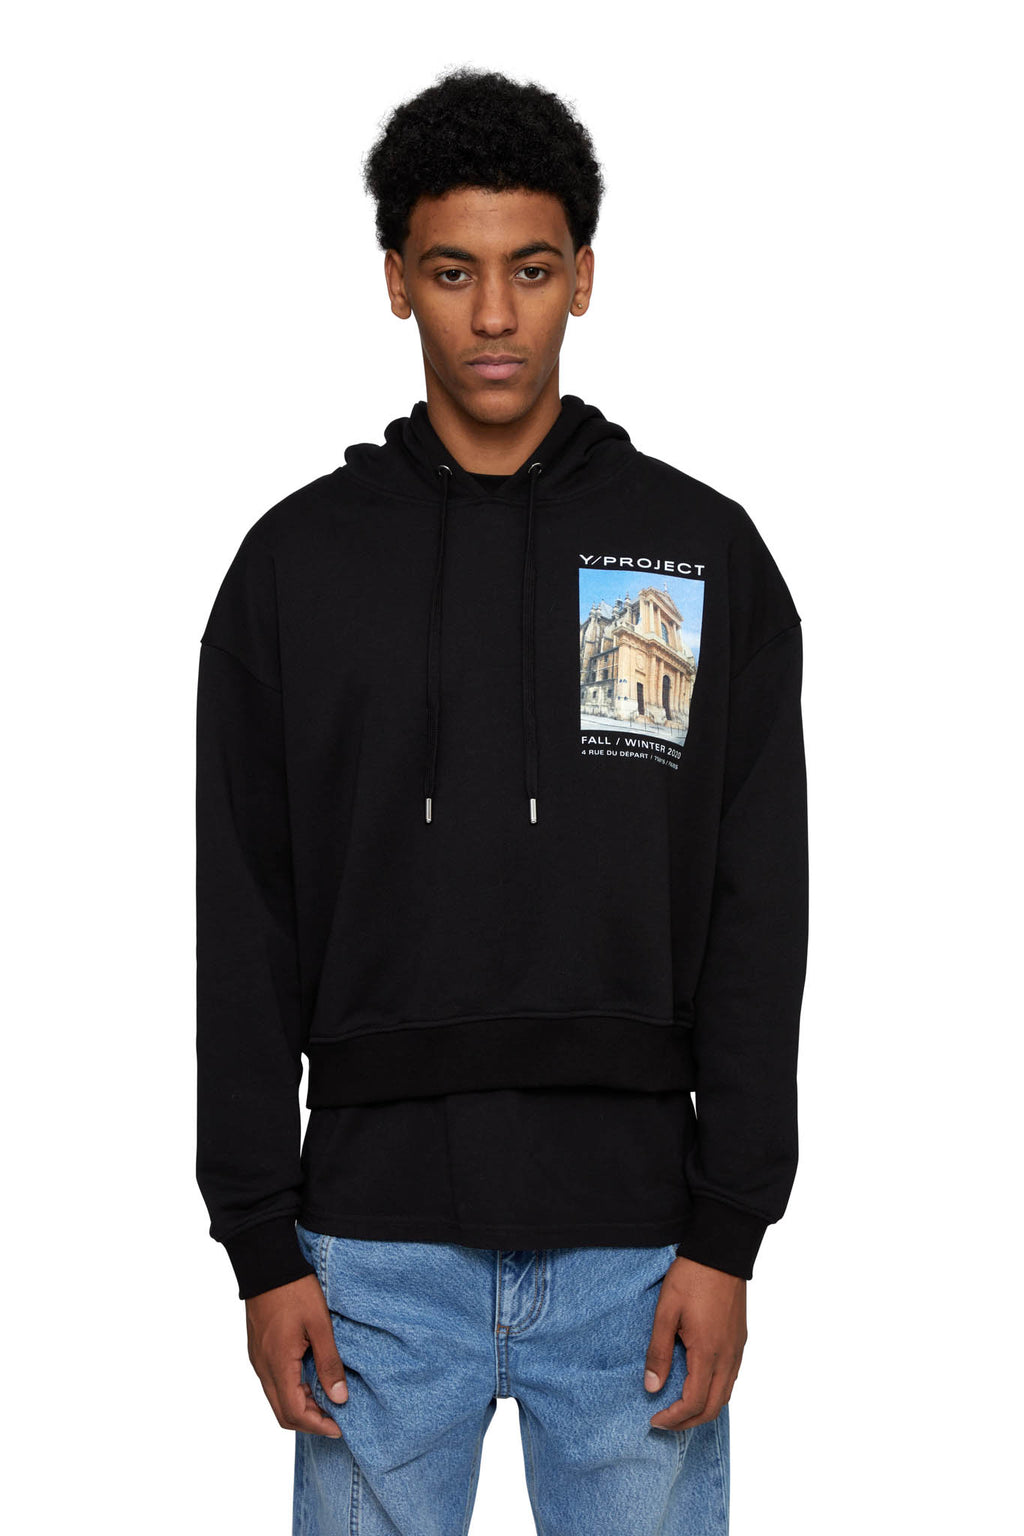 HTOWN, Y/PROJECT, Y/PROJECT MENSWEAR, HTOWN Y/PROJECT, Y/PROJECT PRINTED SHOW HOODIE, Y/PROJECT HOODIE, Y/PROJECT PRINTED HOODIE, Y/PROJECT SHOW, PRINTED HOODIE, HOODIE, 100% COTTON, FRENCH DESIGNER, LONDON BOUTIQUE, AUTUMN WINTER 2020, AW20, LUXURY DESIGNER, LUXURY FASHION, MEN'S LUXURY HOODIE, LUXURY HOODIE, HTOWN EXCLSUIVE, Y/PROJECT EXCLSUIVE